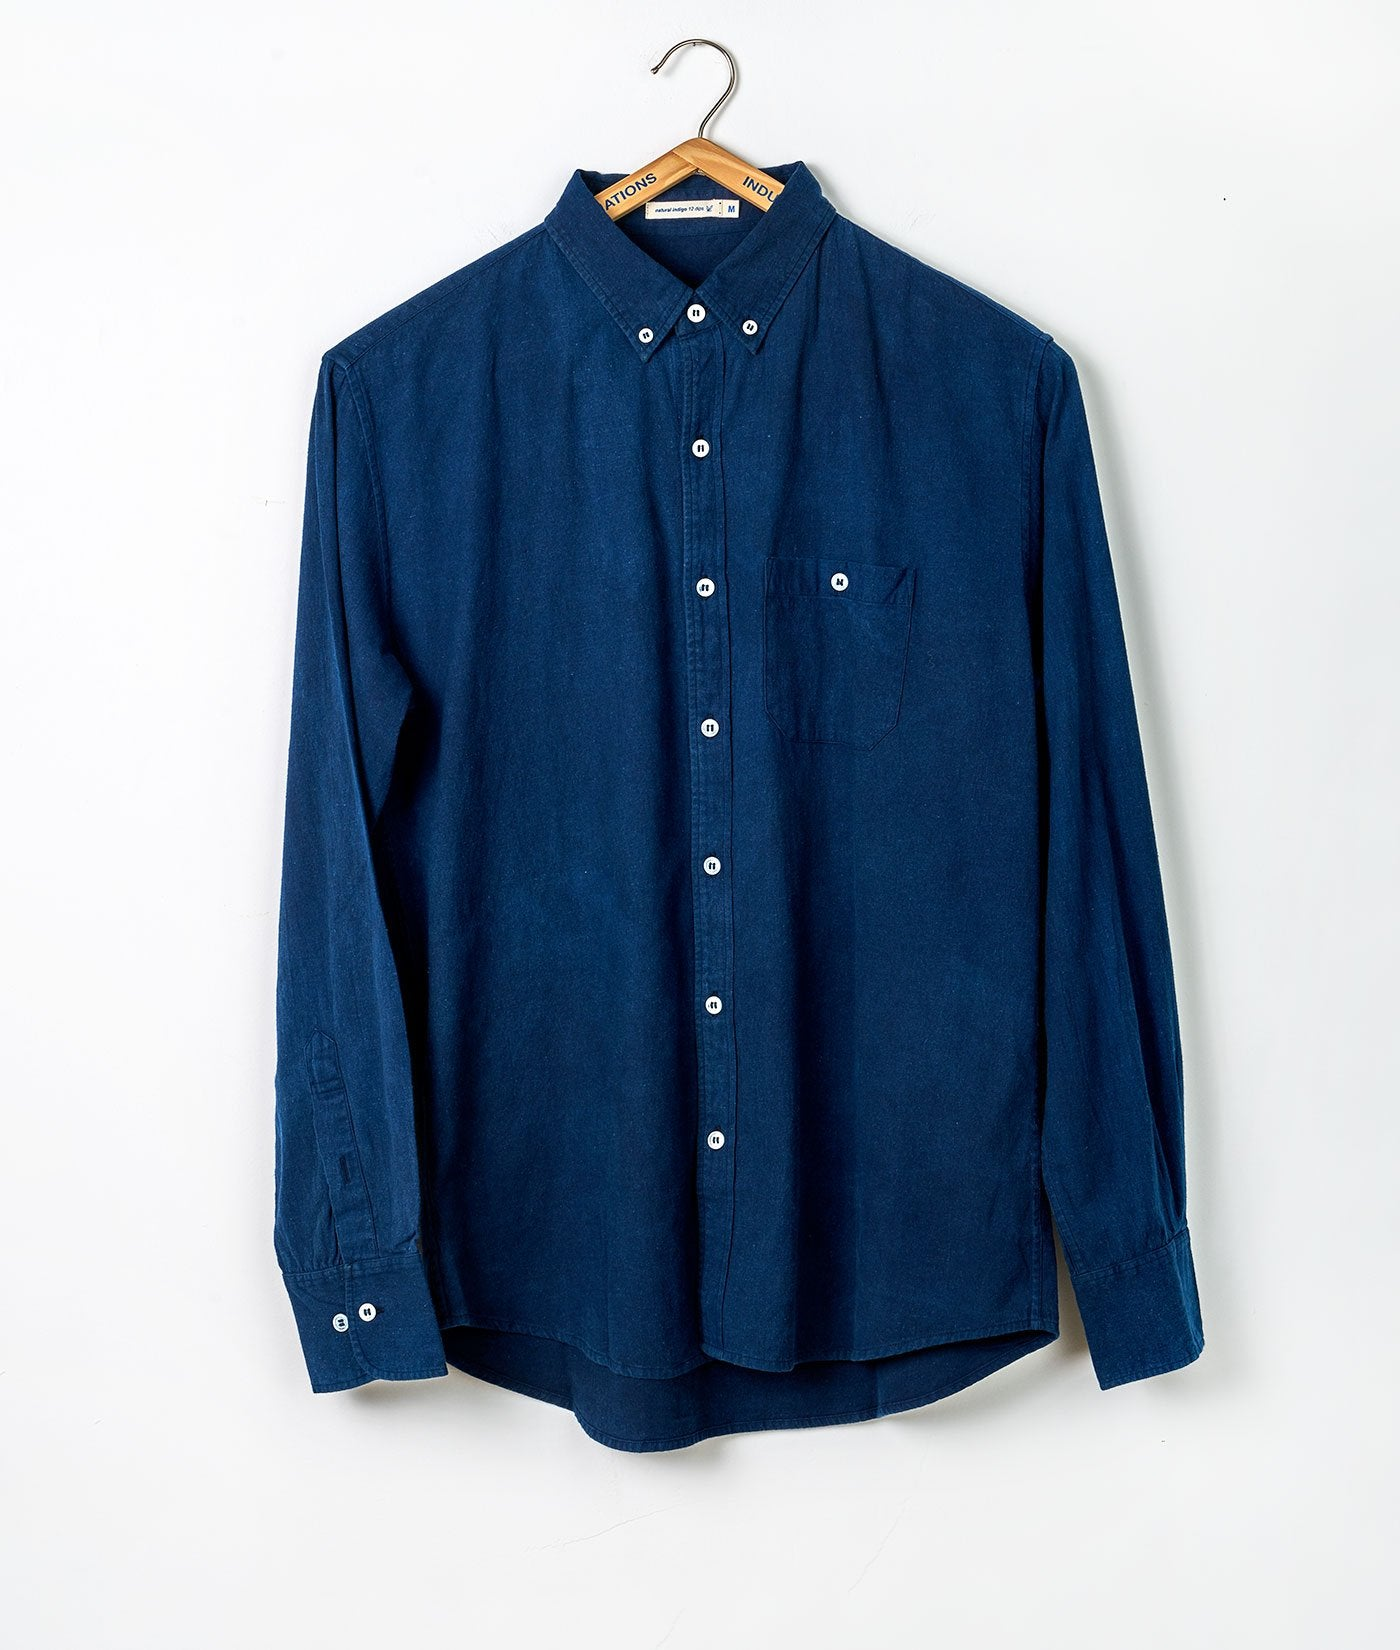 Industry of All Nations Heavy Cotton Button Down Work Shirt Indigo 12